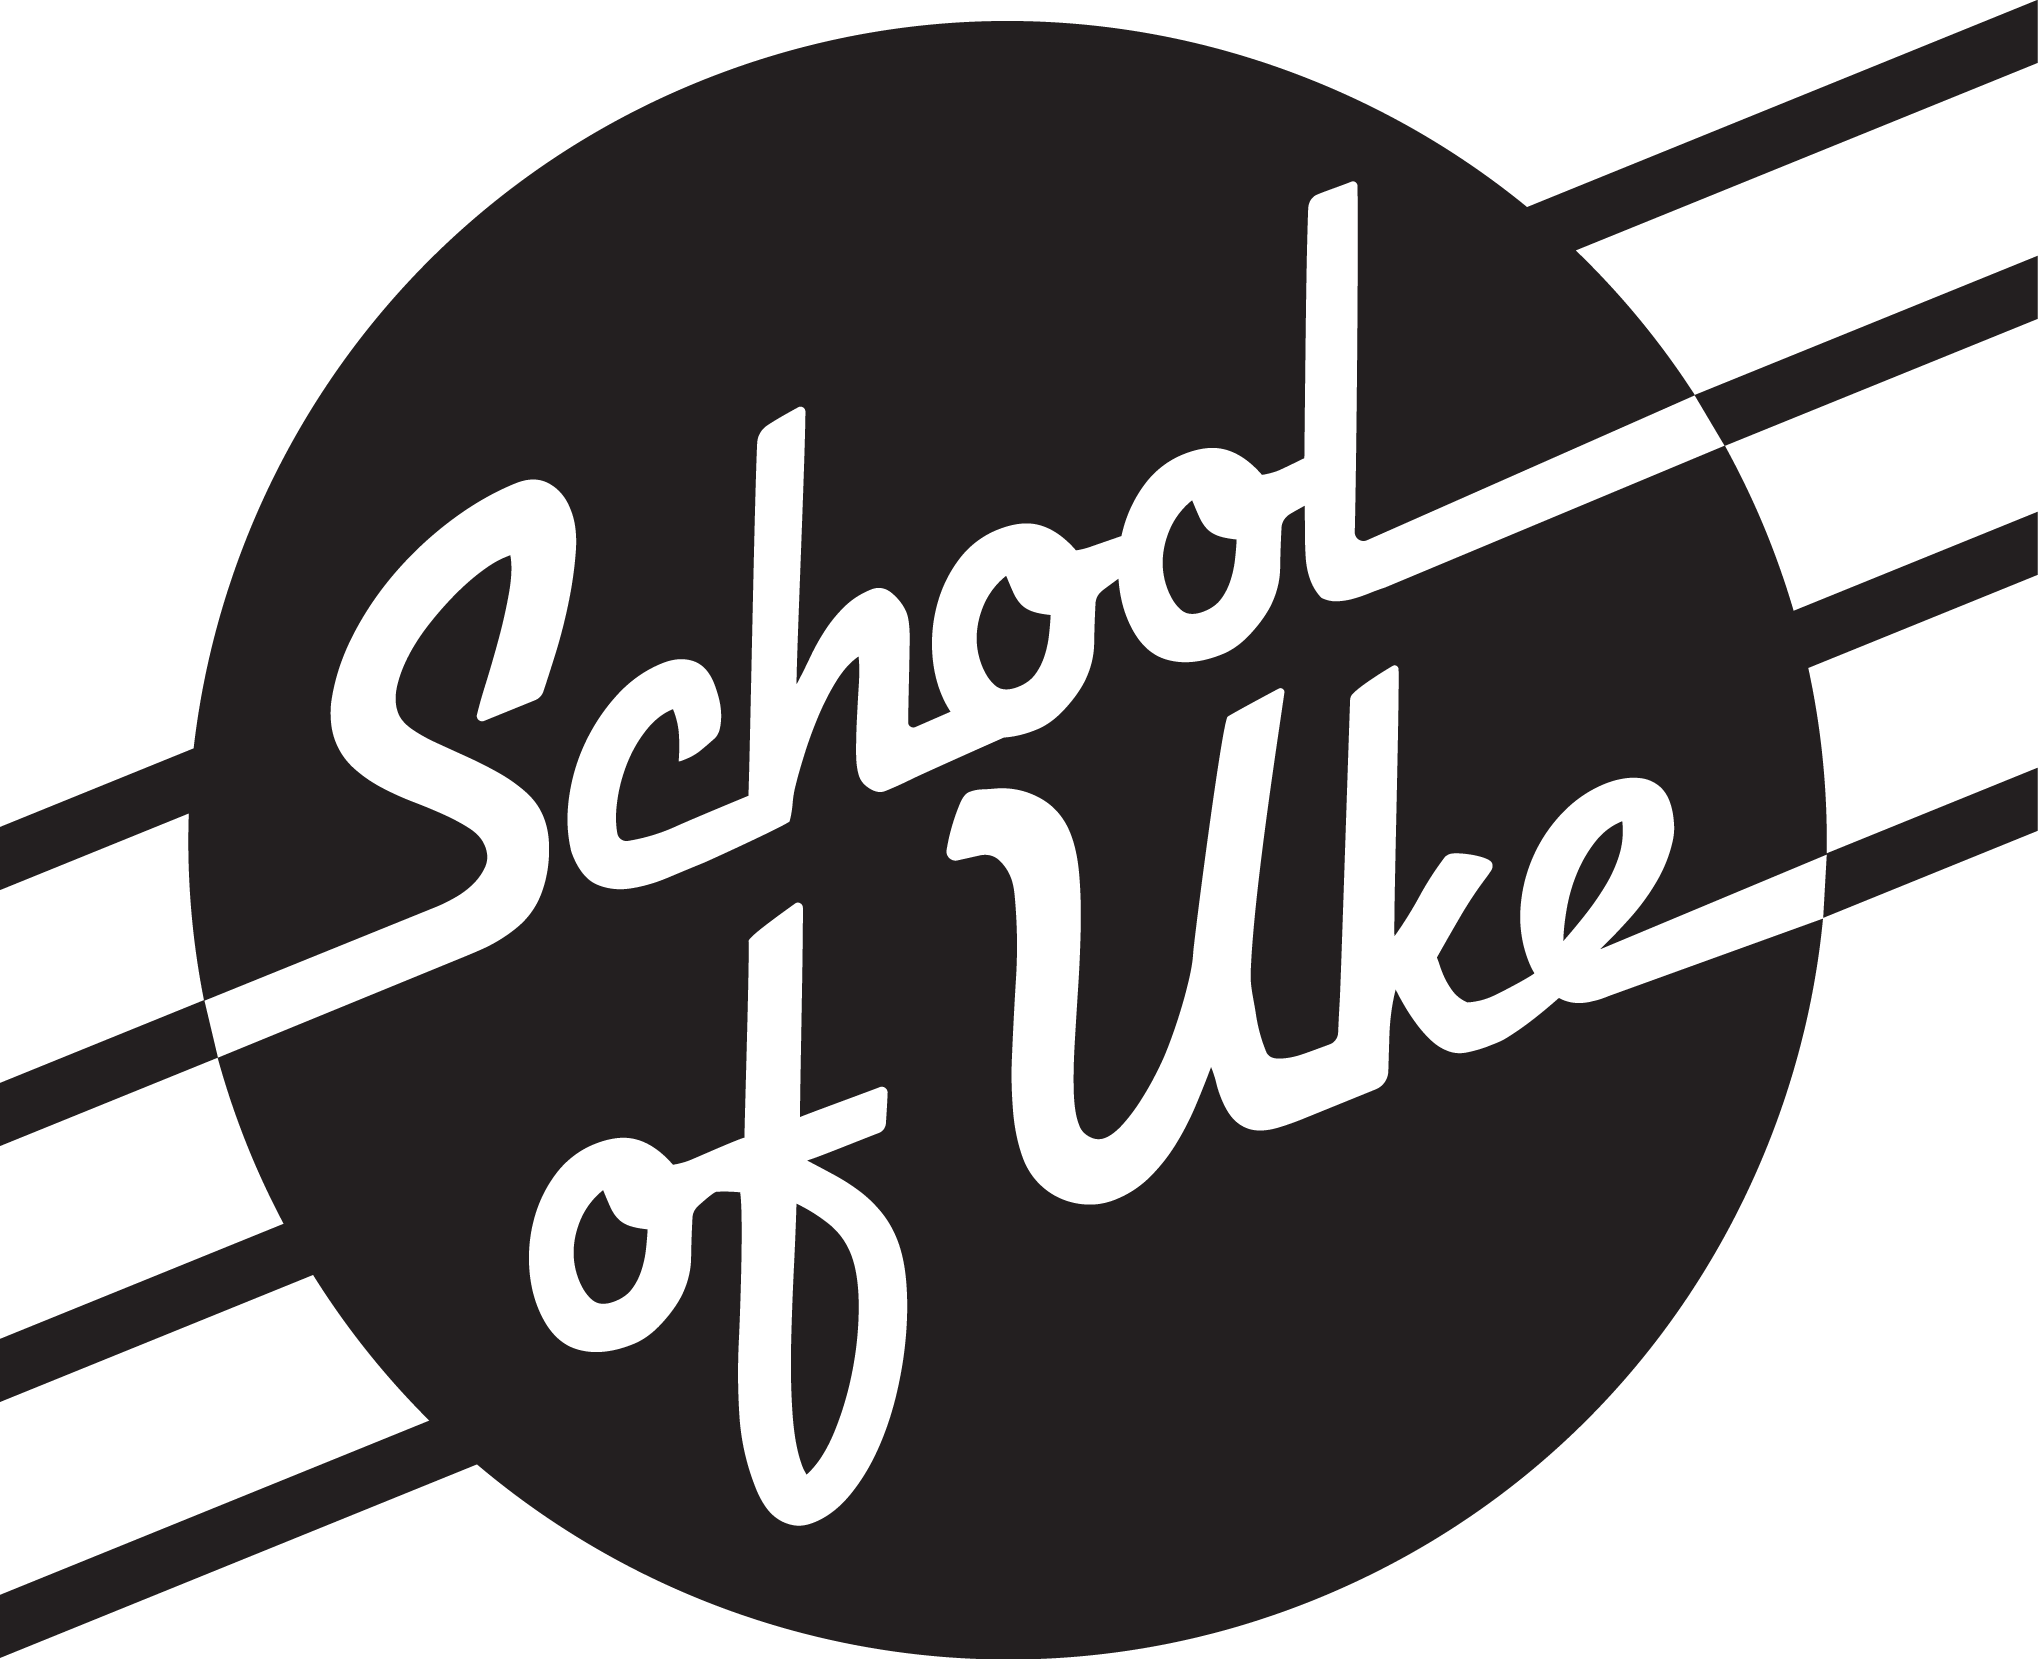 school-of-uke-logo-black-transparent.png